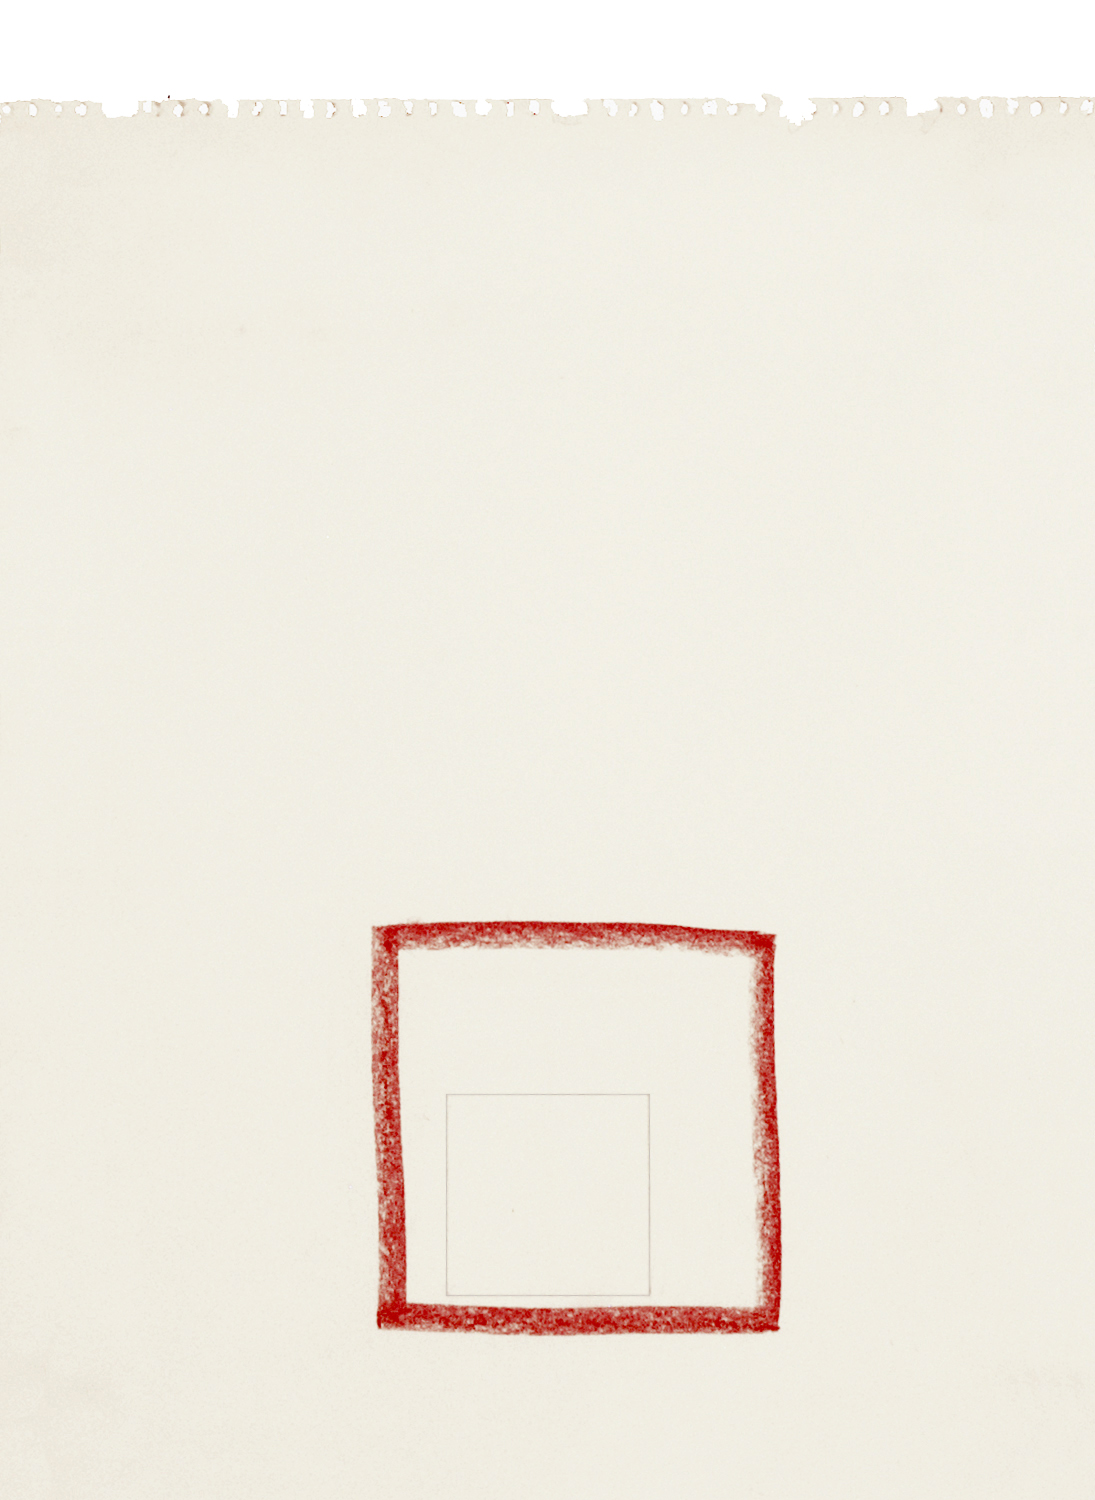 Drawing: 1979, Conté crayon, pencil on Vellum paper, 14 x 11 inches.